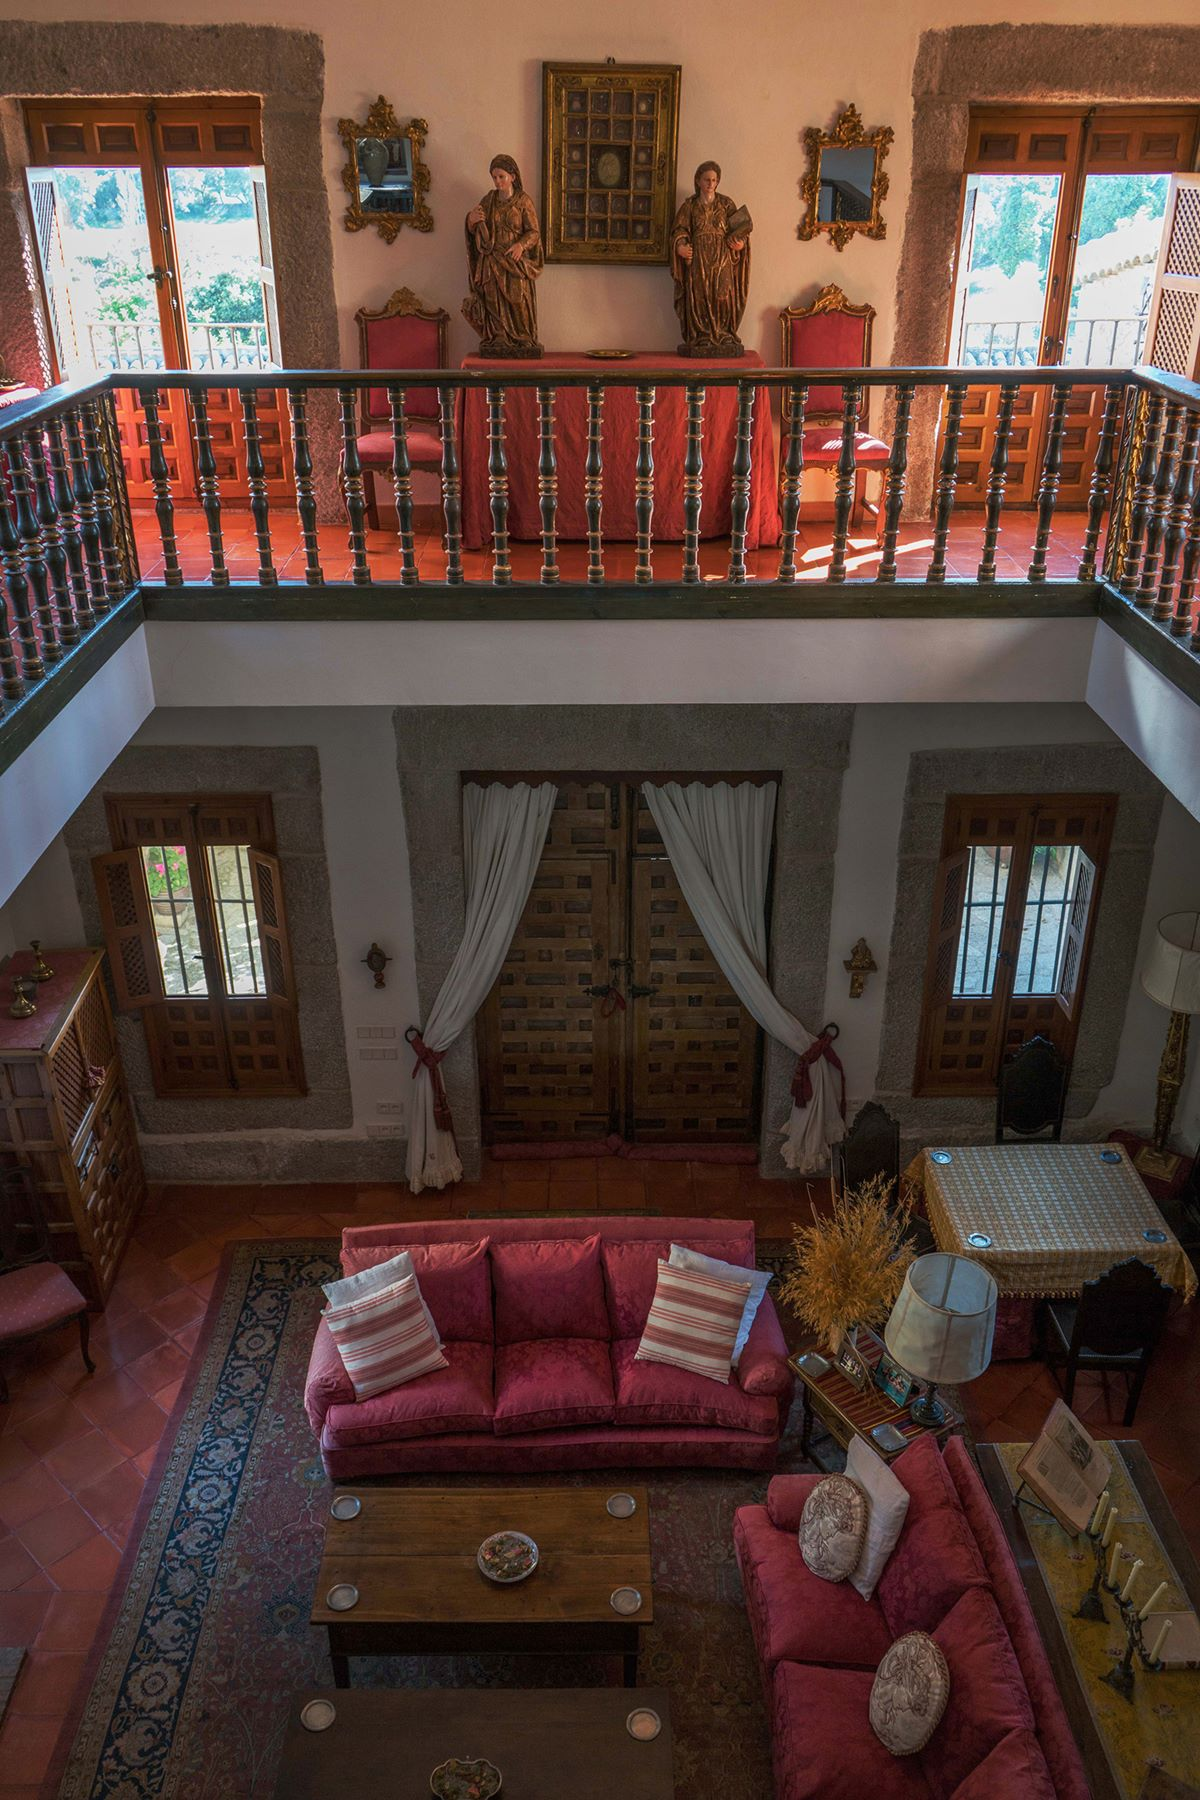 Additional photo for property listing at Mediterranean hunting Finca in Madrid 西班牙其他地方, 西班牙的其他地区 西班牙